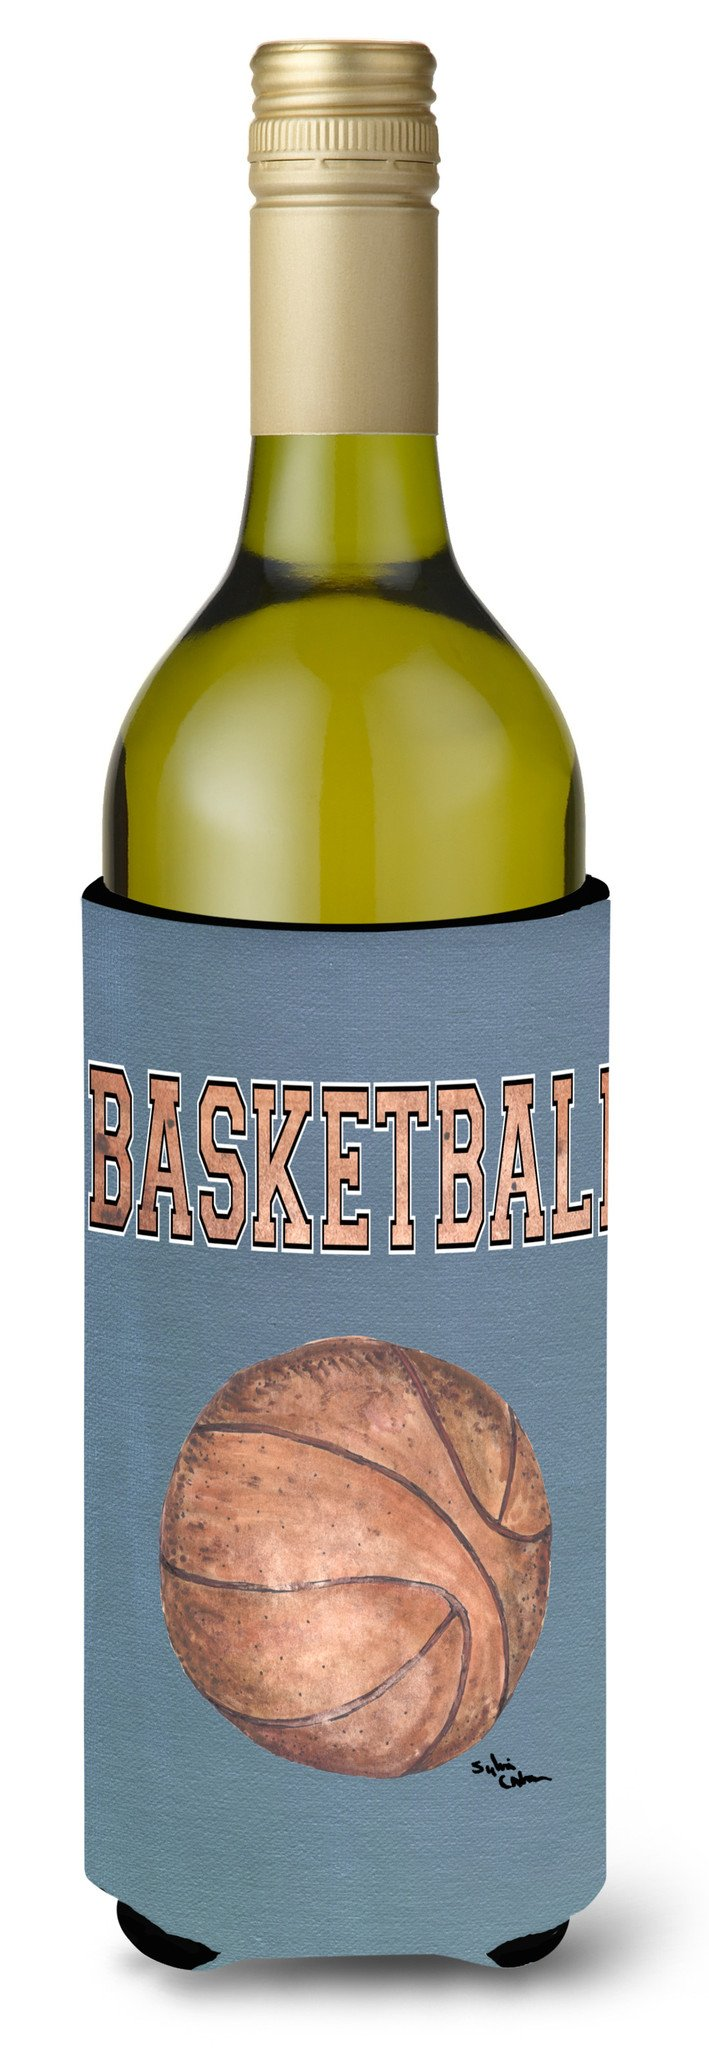 Basketball Wine Bottle Beverage Insulator Beverage Insulator Hugger by Caroline's Treasures